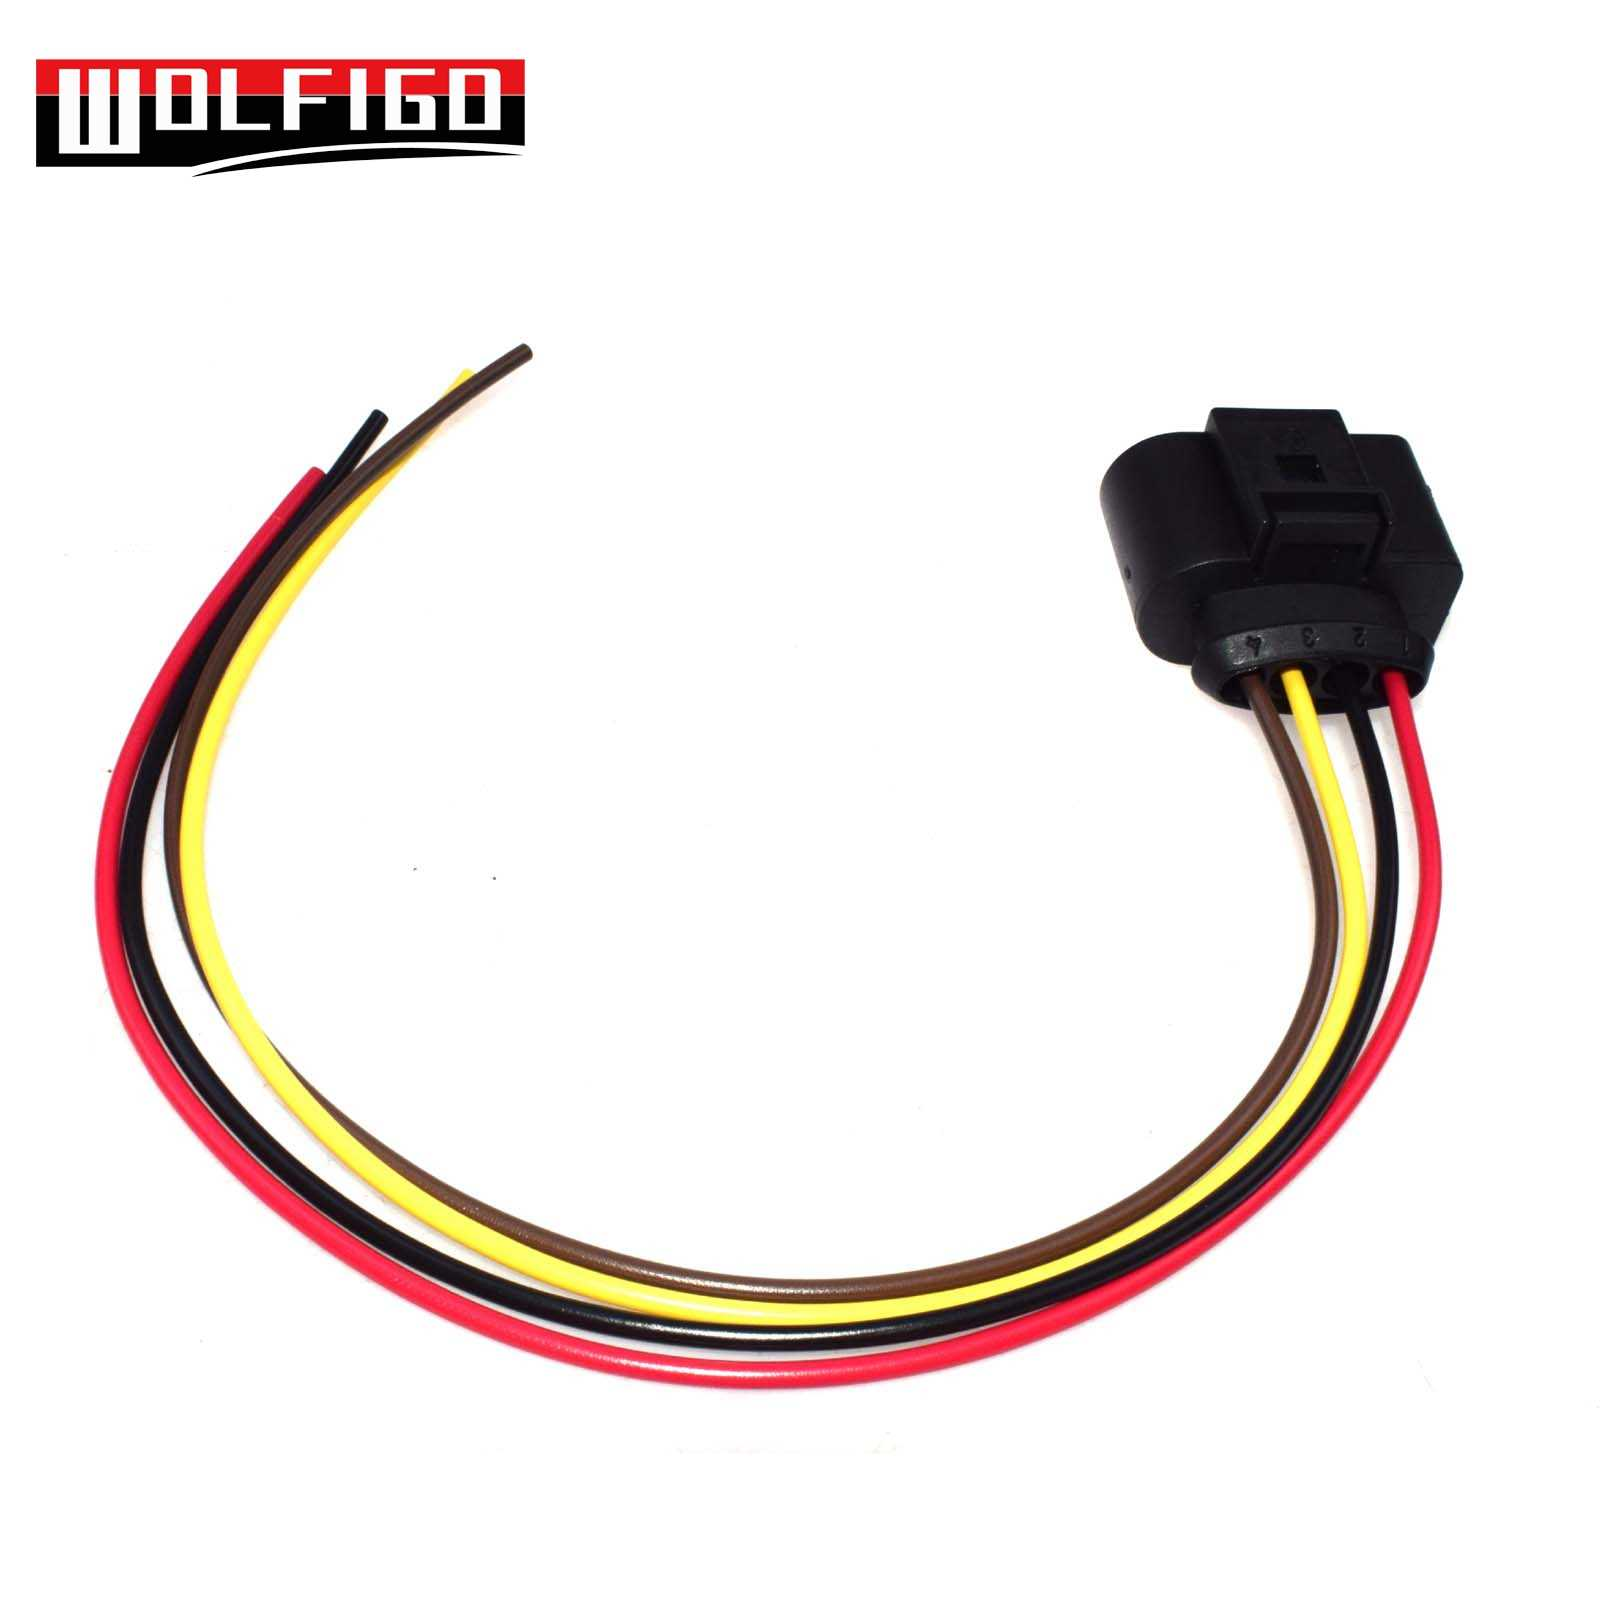 hight resolution of  wolfigo new ignition coil connector repair kit harness plug wiring for audi vw skoda